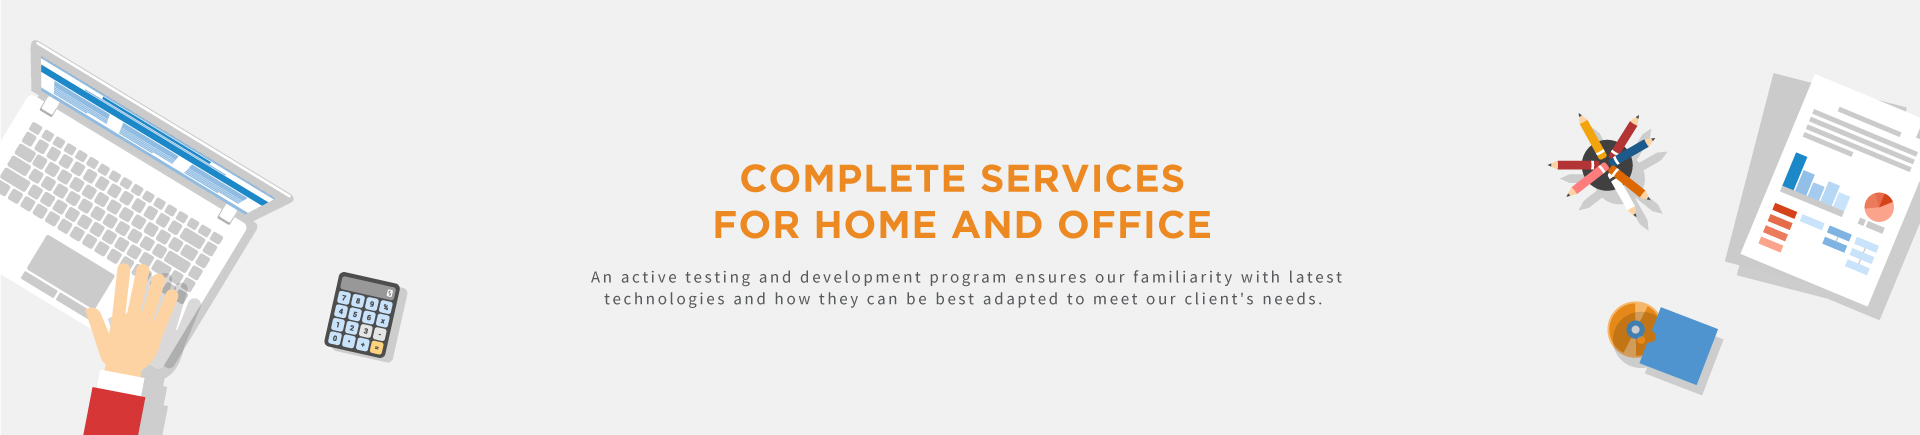 Complete services for home and office